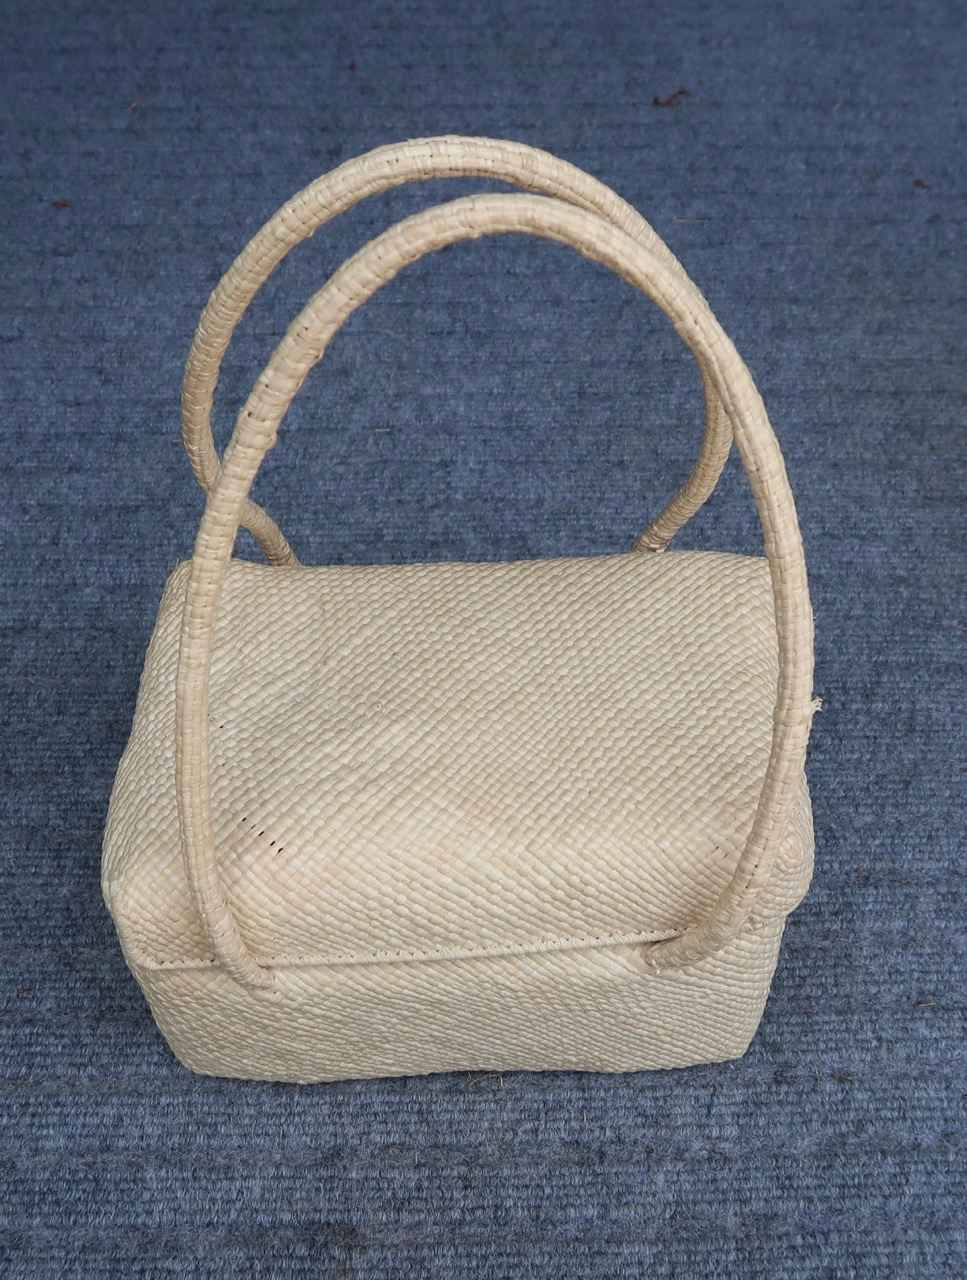 Woven Purse with two-... by   Unknown - Masterpiece Online